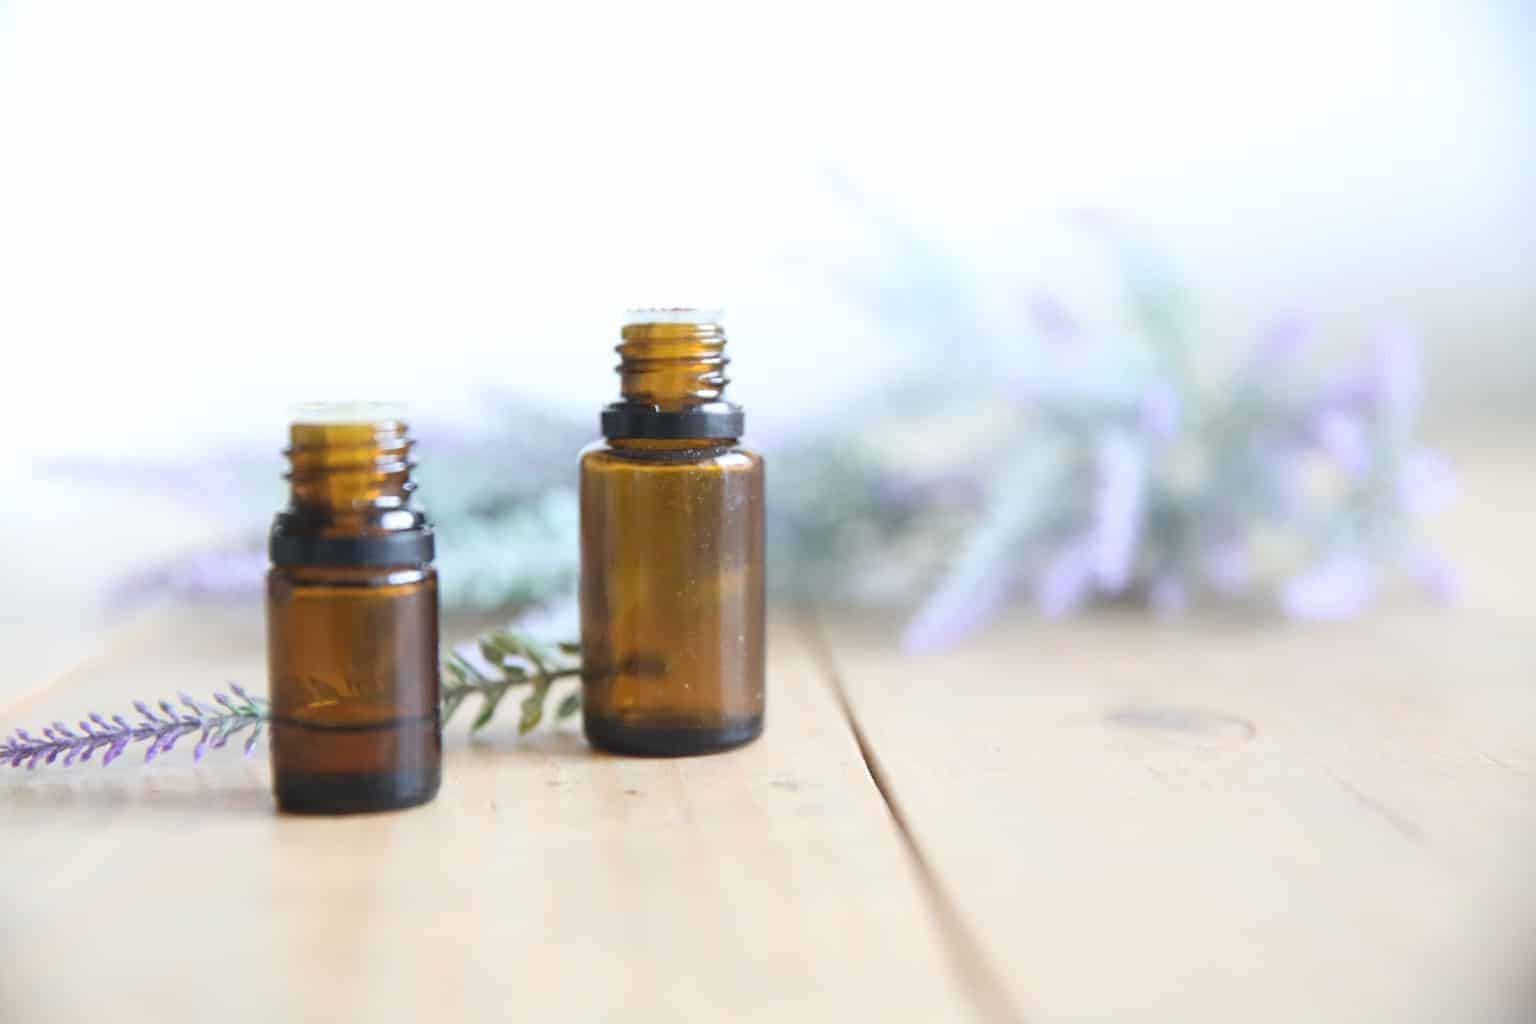 Learn the many benefits of lavender essential oil and how to use it safely and effectively.